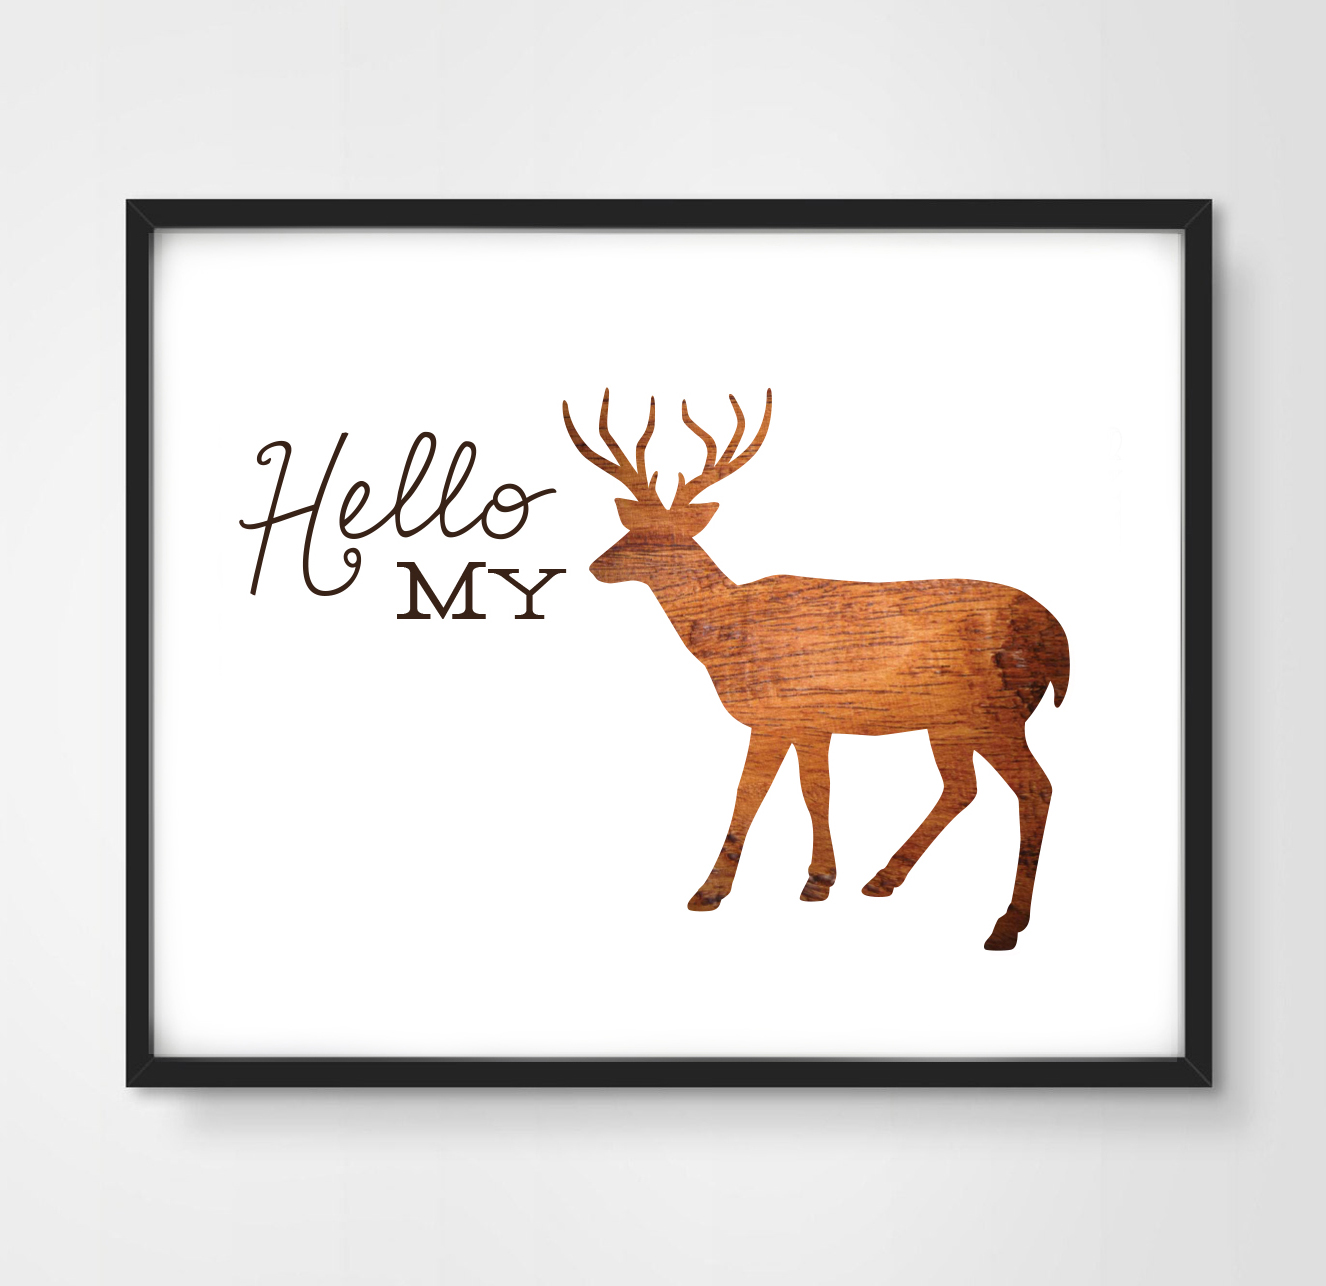 Deer-sign-etsy-wood1.jpg